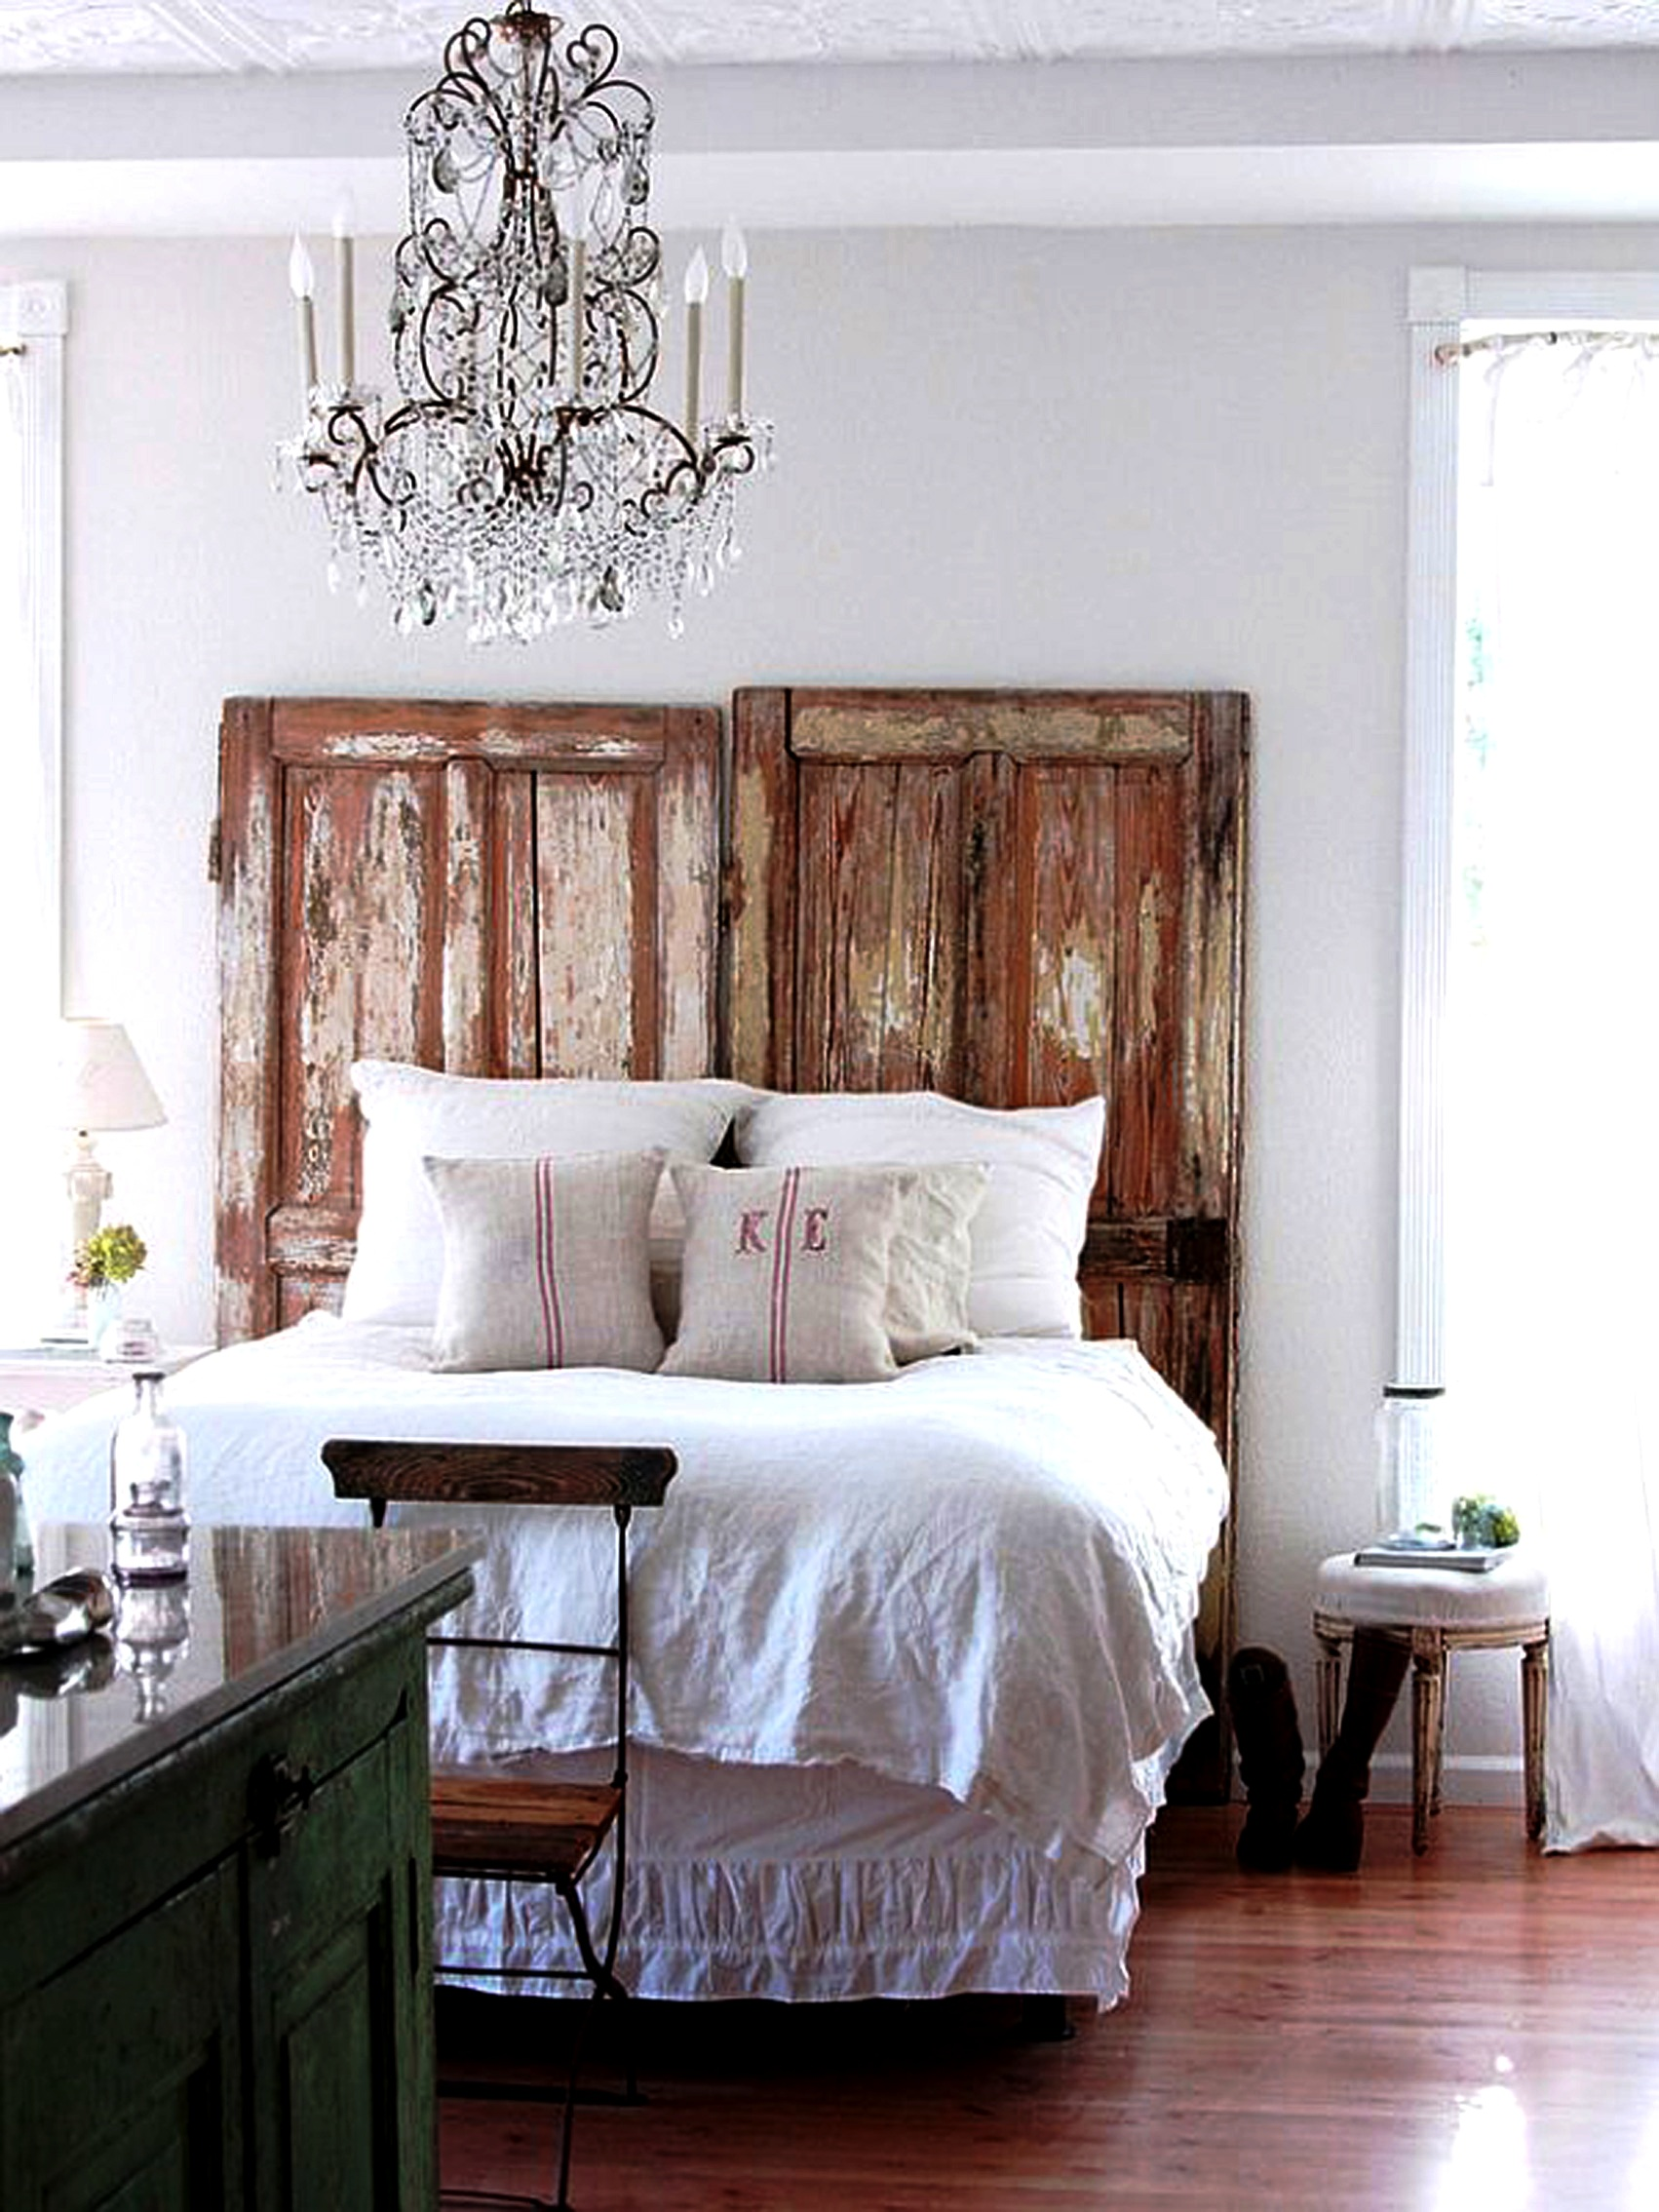 Rustic chic home decor ideas you bet your pierogi - Bedroom wall decor ideas ...